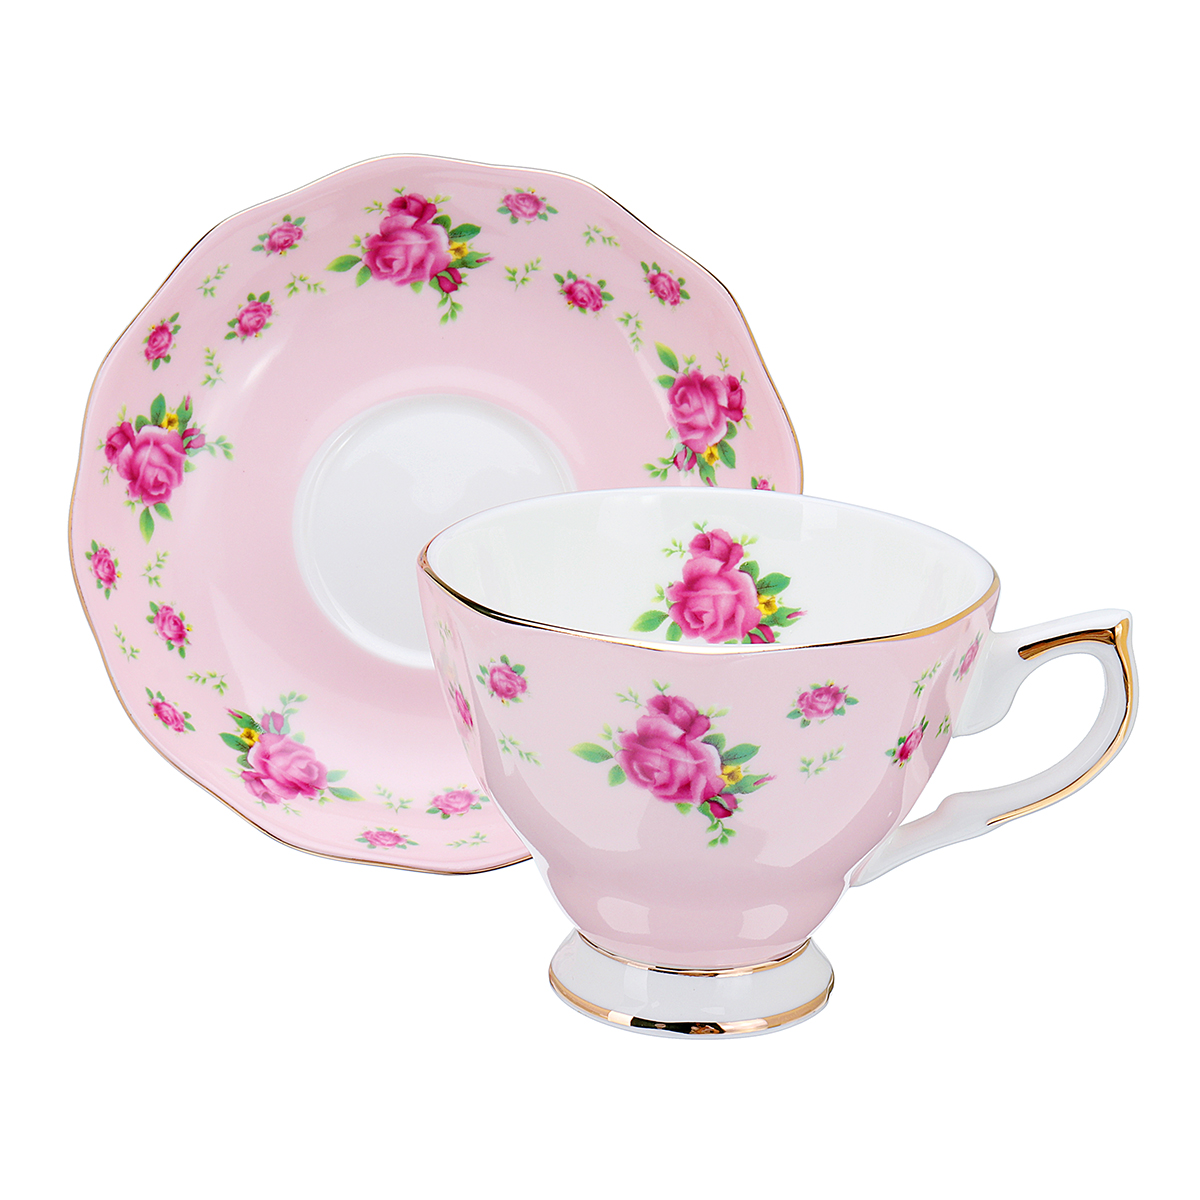 Porcelain Fashion British Bone China Cafe Cup Set Saucer Ceramic Flower Tea Set